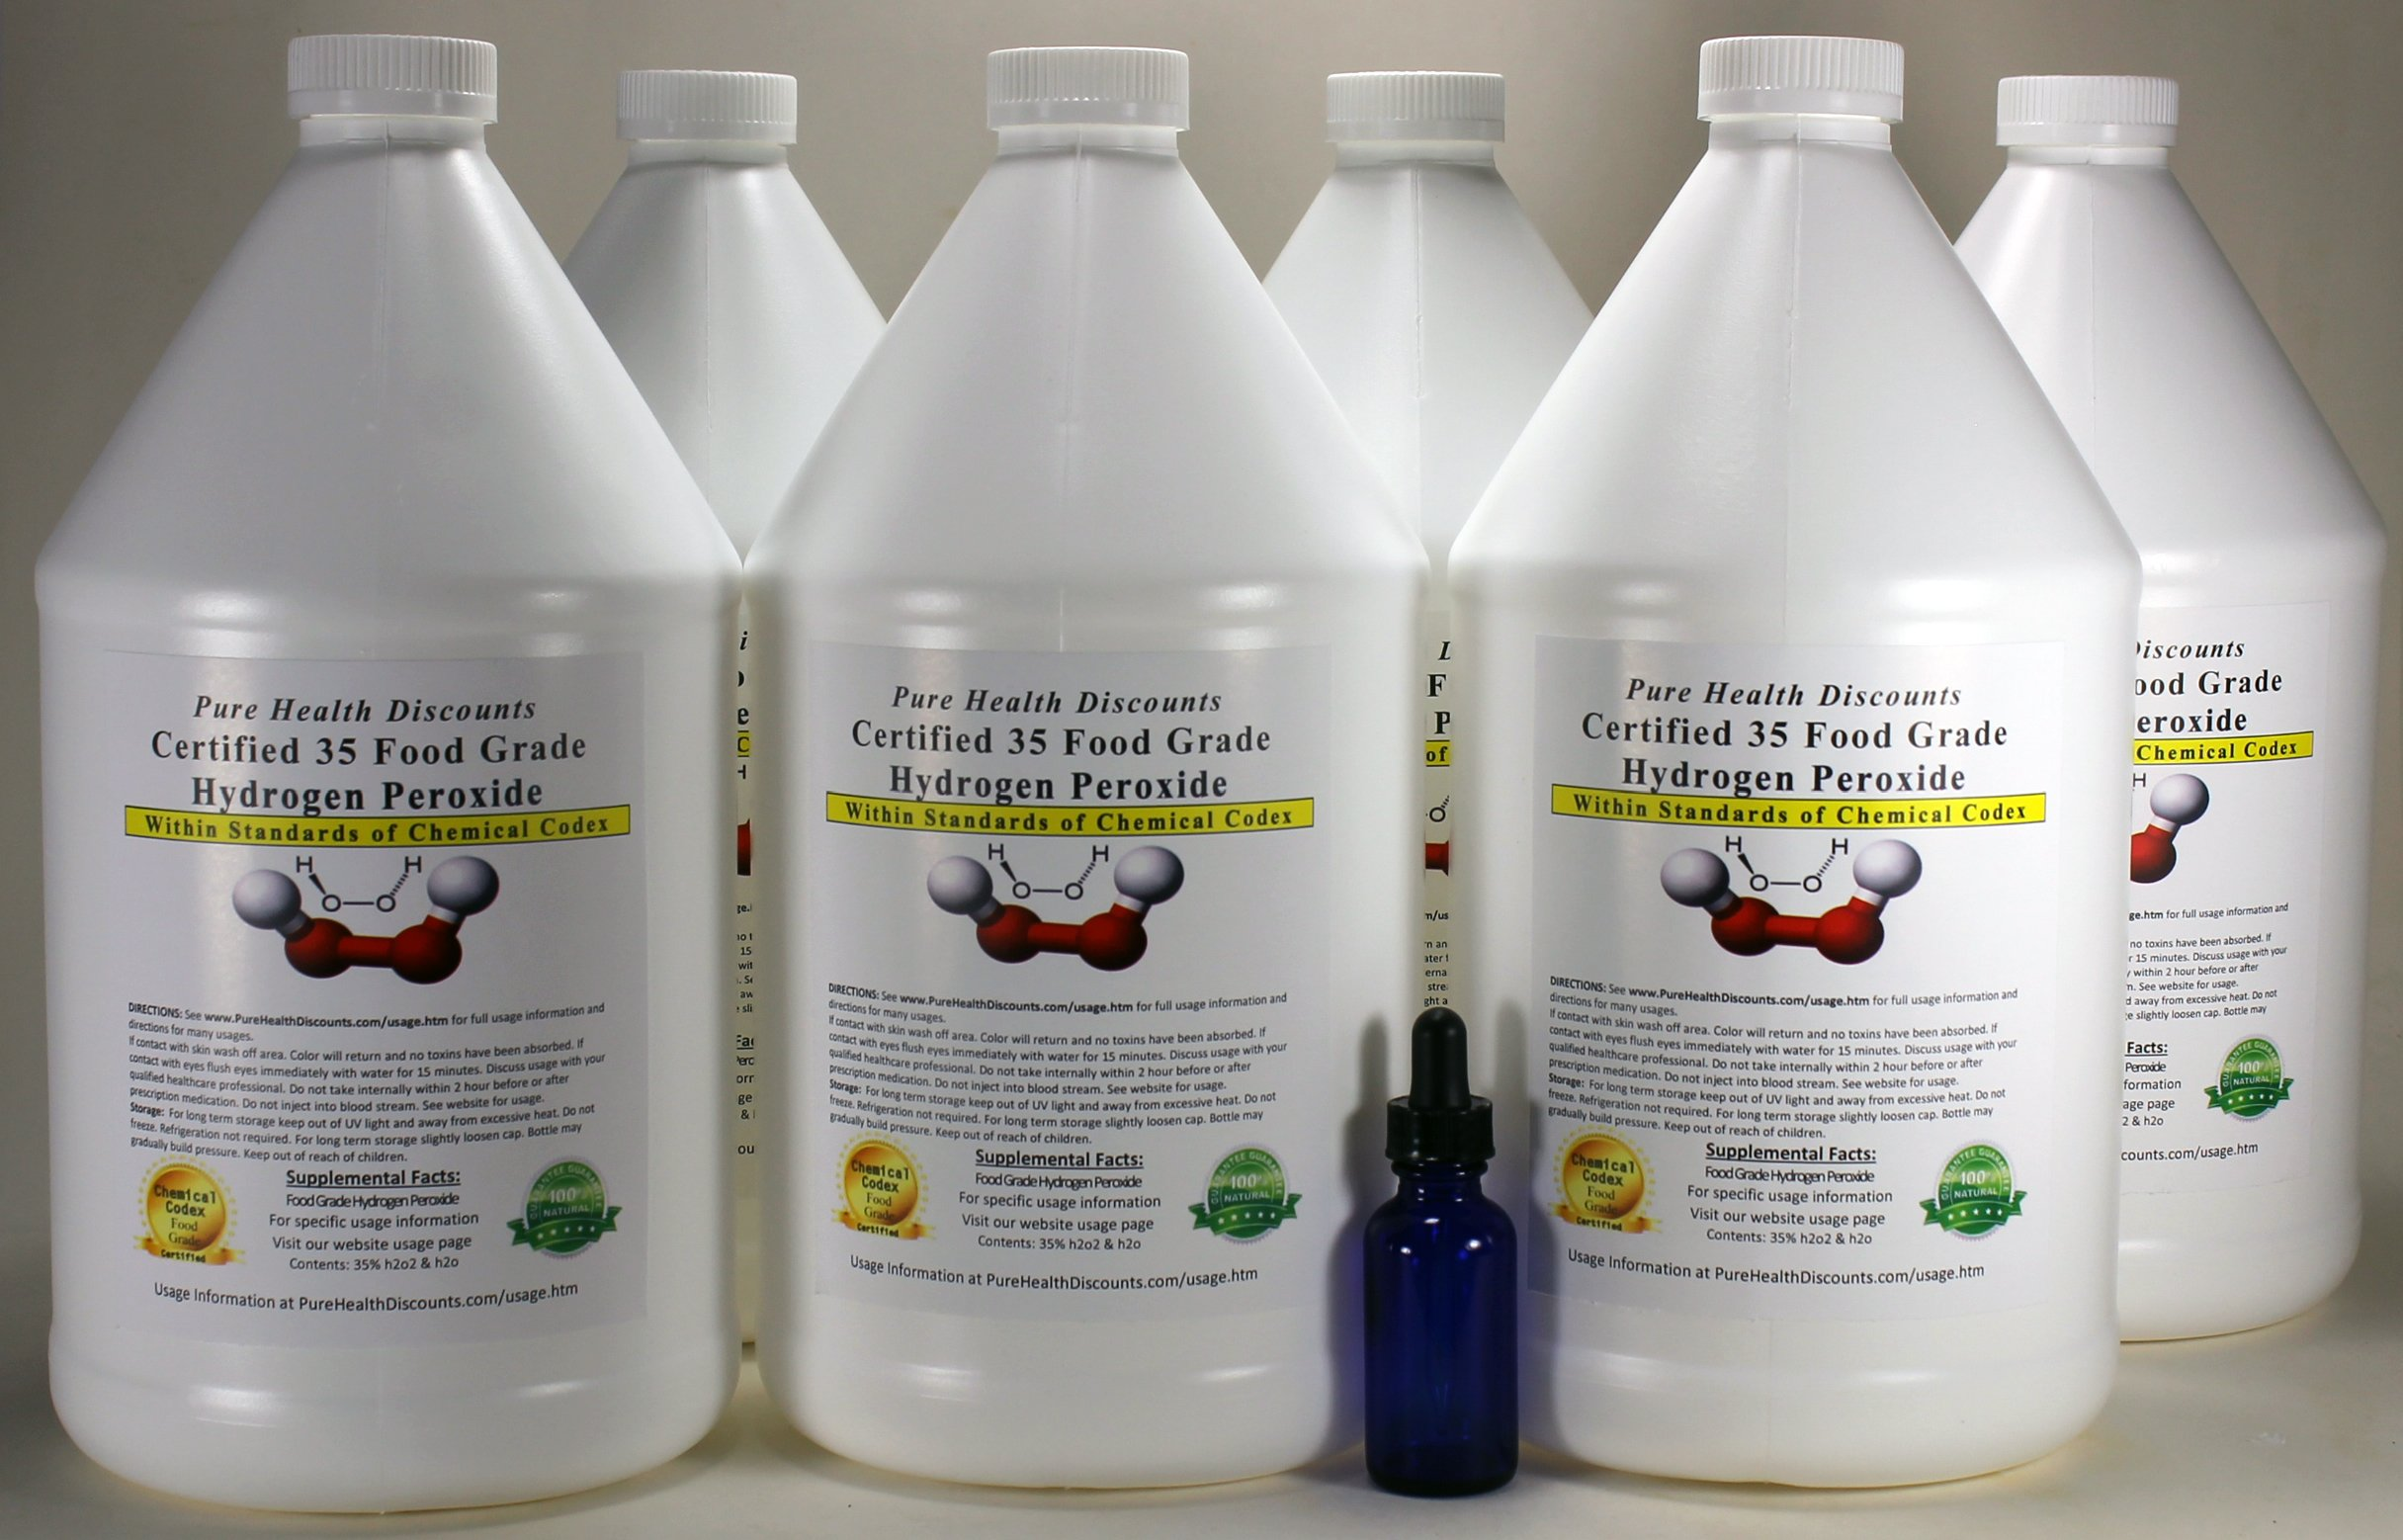 6 Gallons of 35% Food Grade Hydrogen Peroxide PLUS Cobalt Dropper Bottle. Same as found in The One Minute Cure. Shipped super fast. This is a GREAT price for the REAL thing